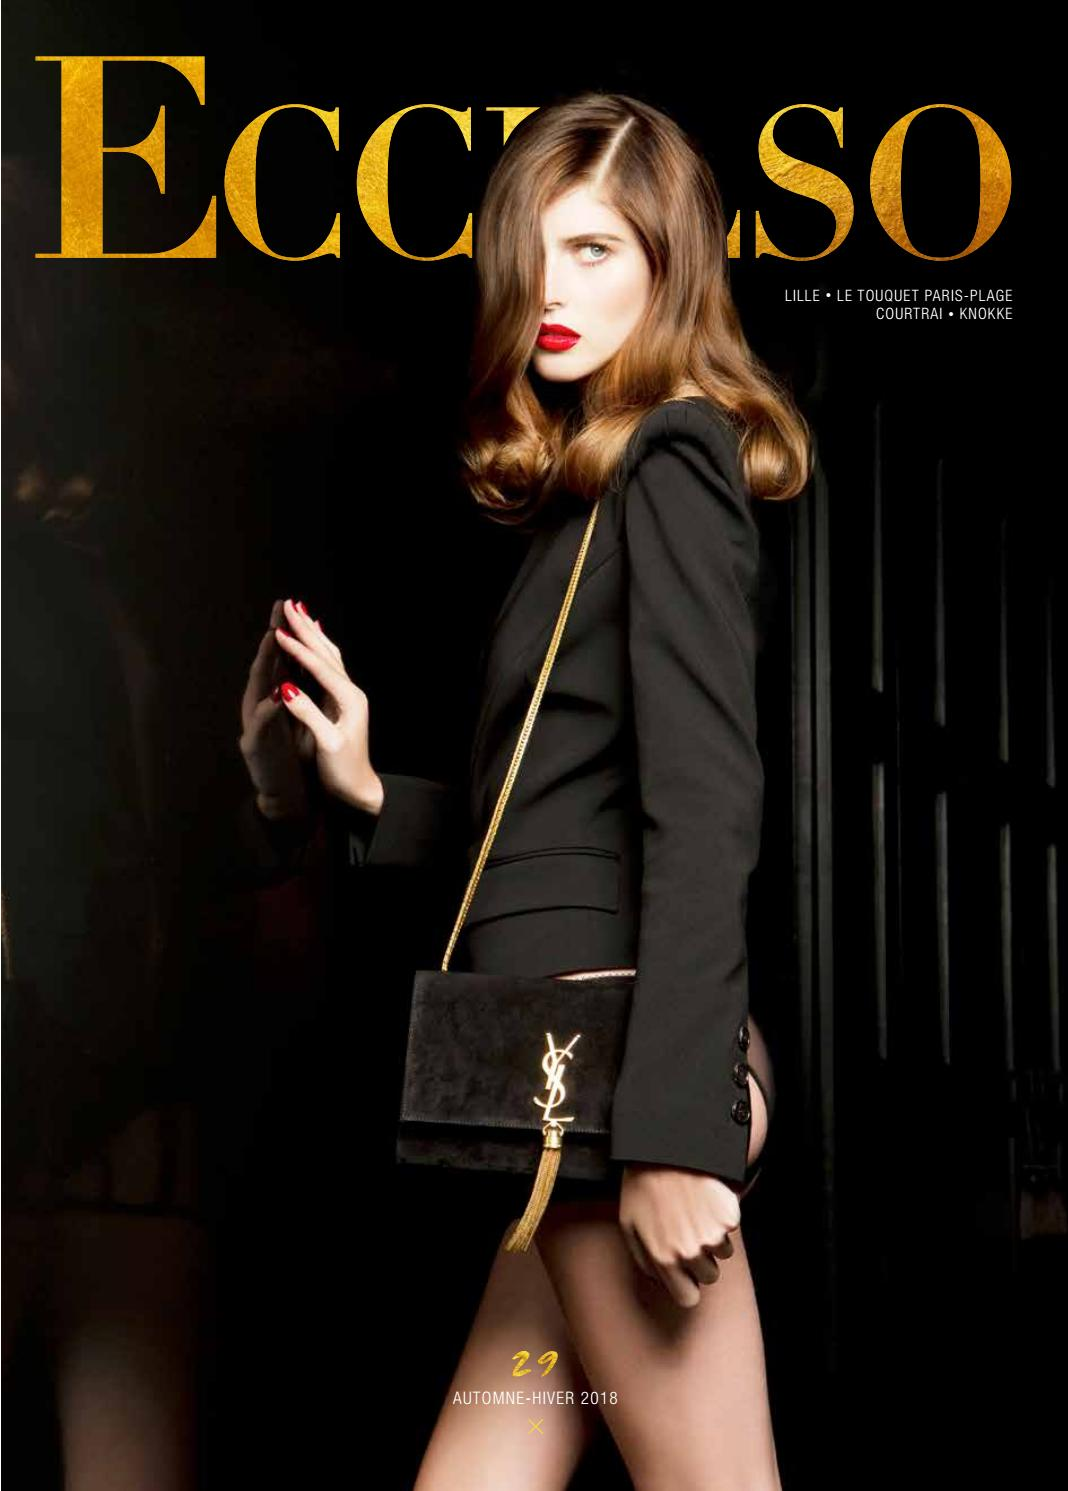 Eccelso Automne Hiver 2018-19 by Eccelso Magazines - issuu ea9dad46660